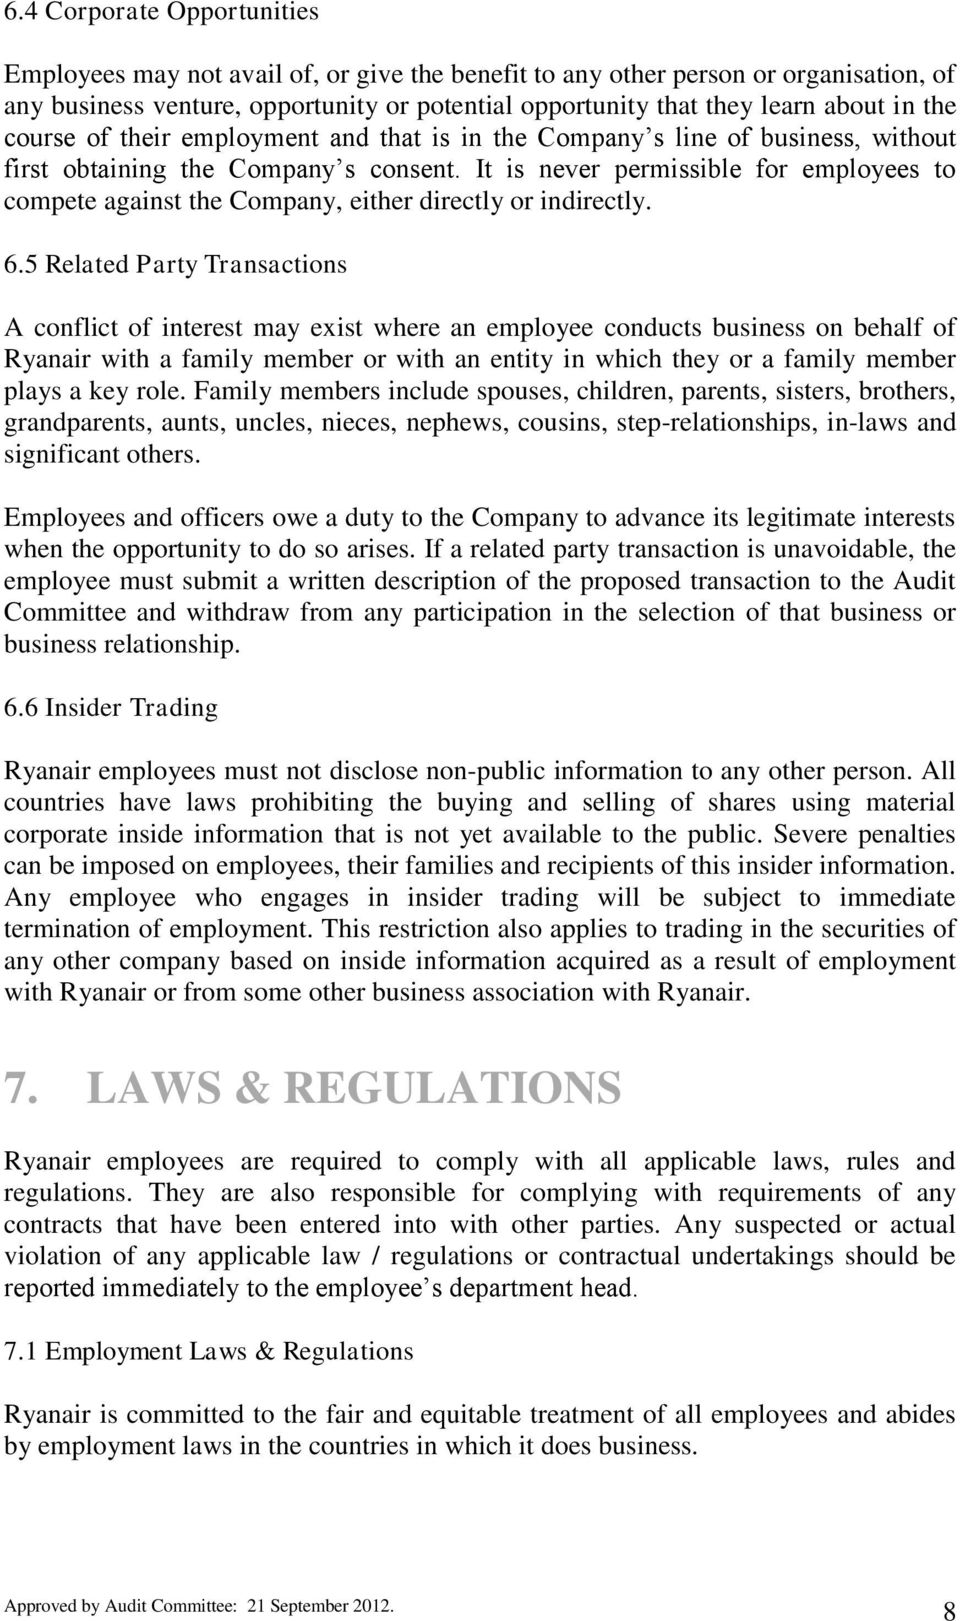 It is never permissible for employees to compete against the Company, either directly or indirectly. 6.